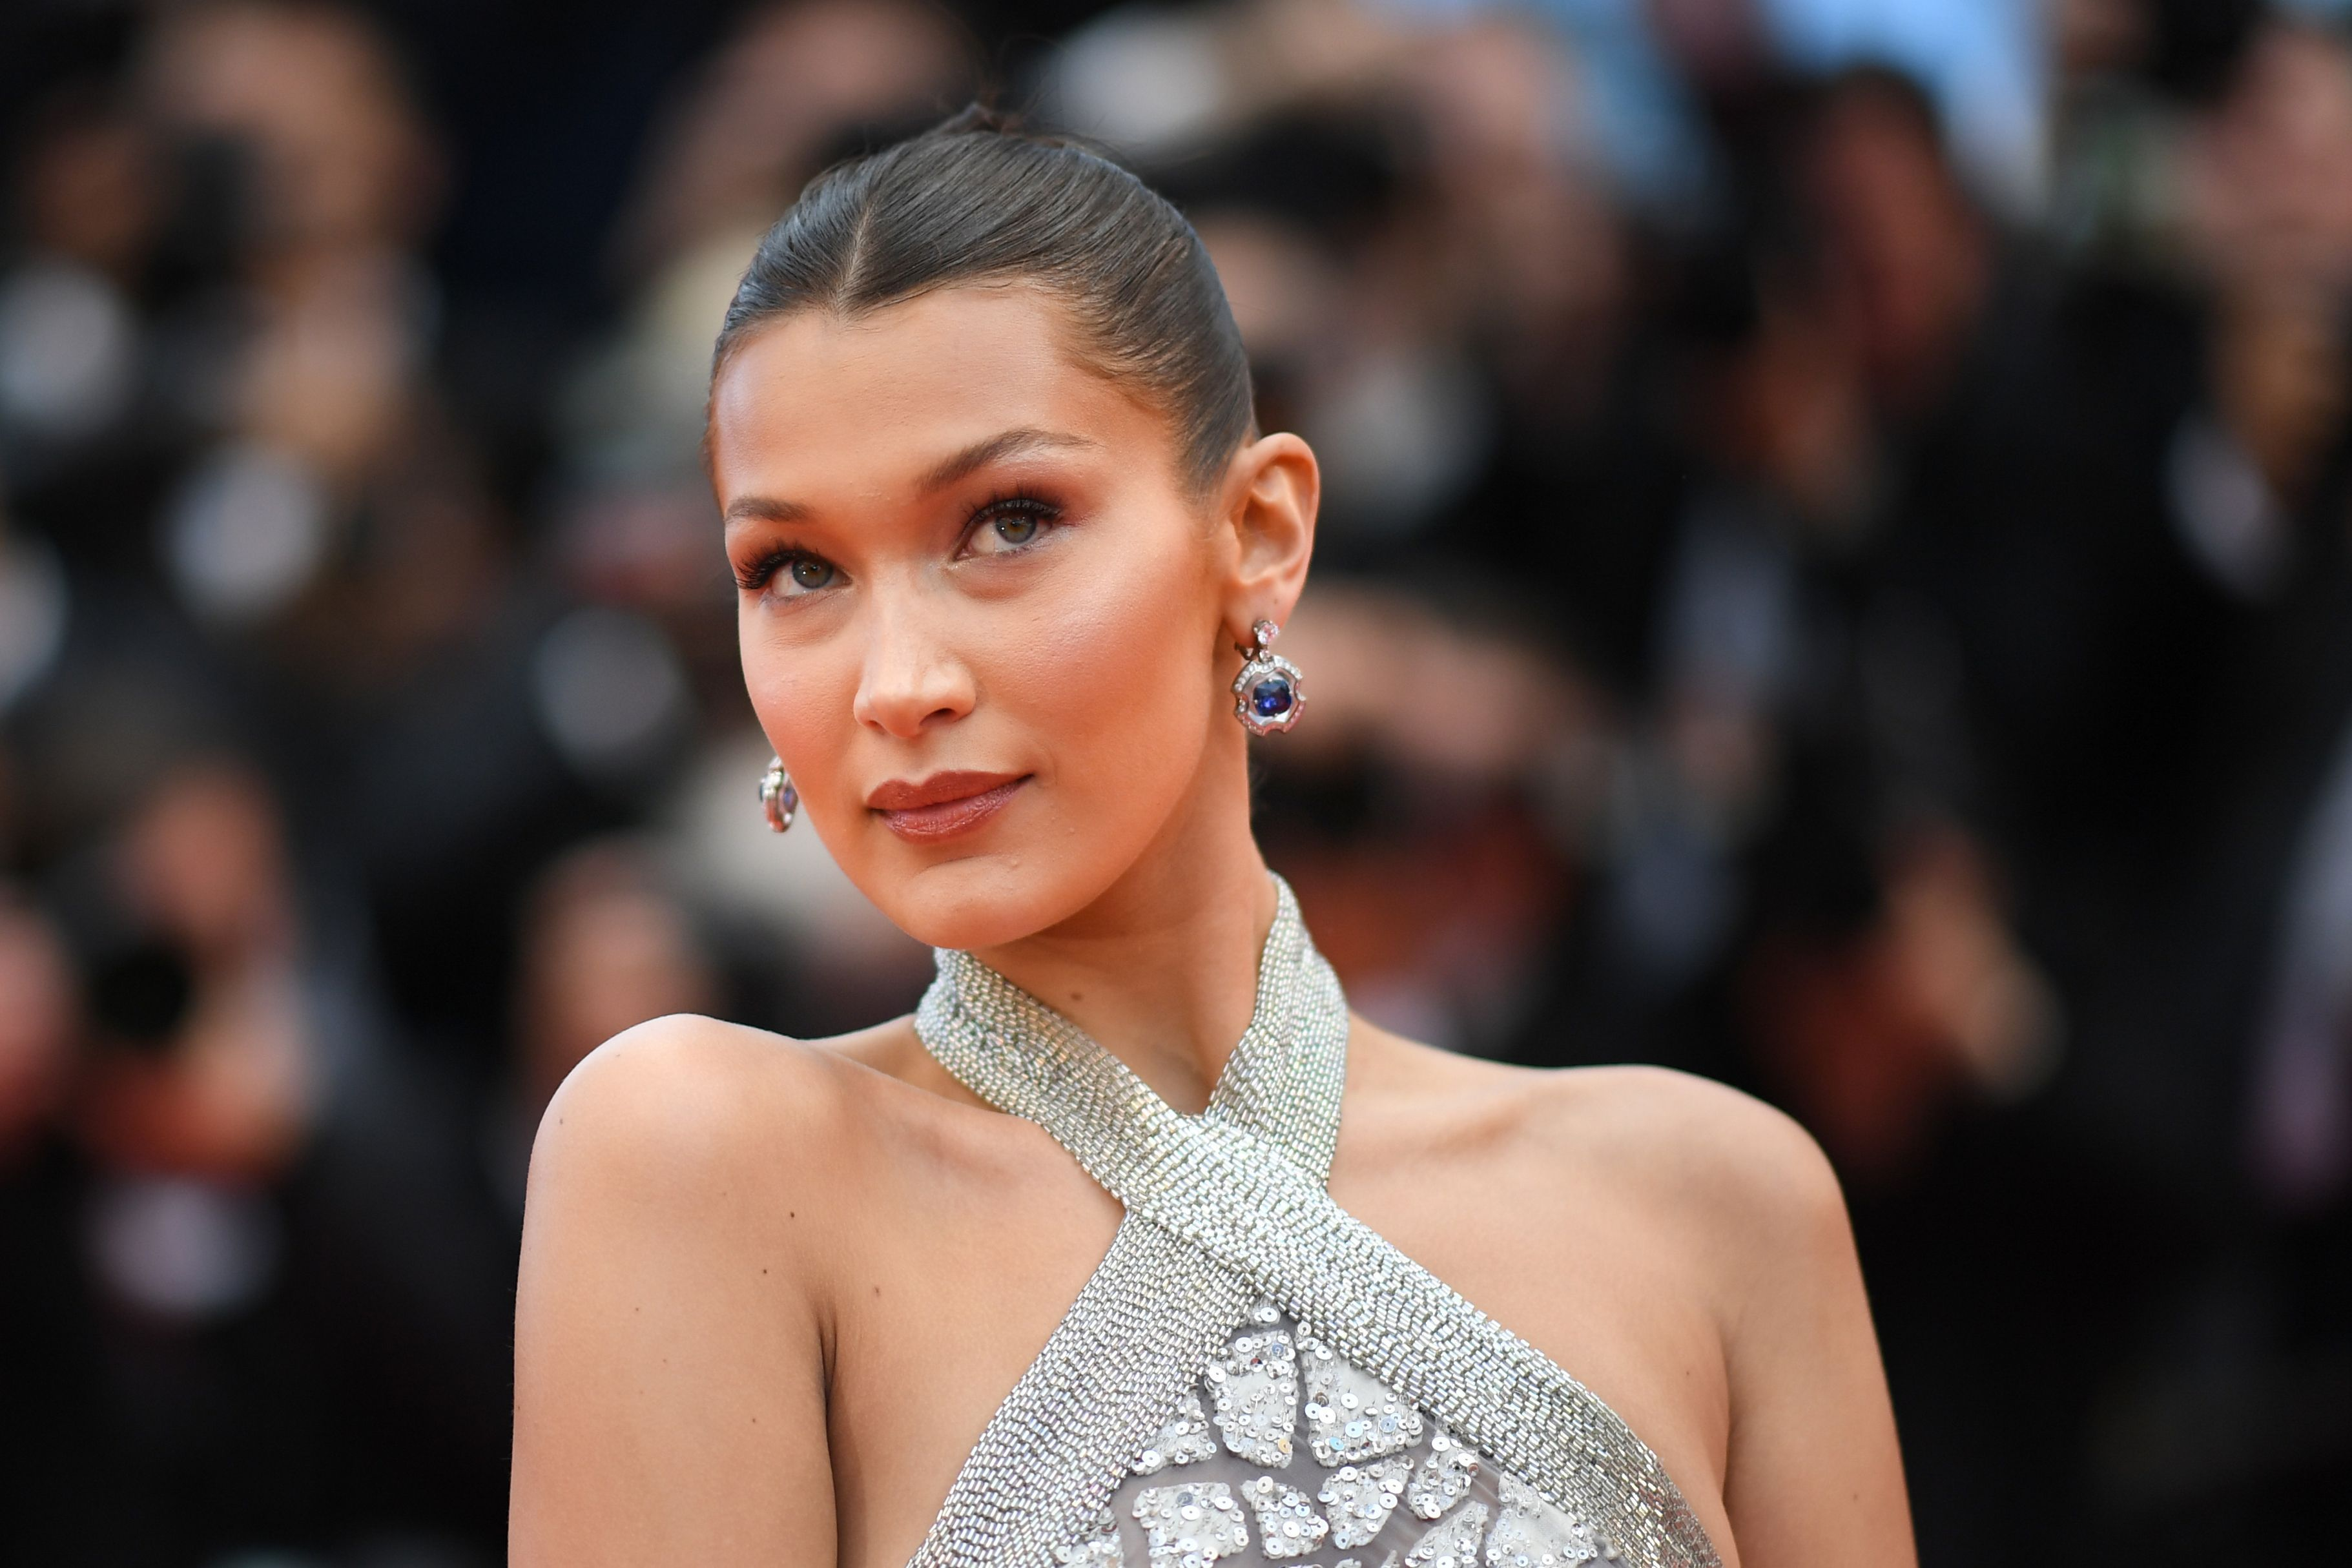 Bella Hadid Seeks Apologies After Being Framed for Racism on Instagram